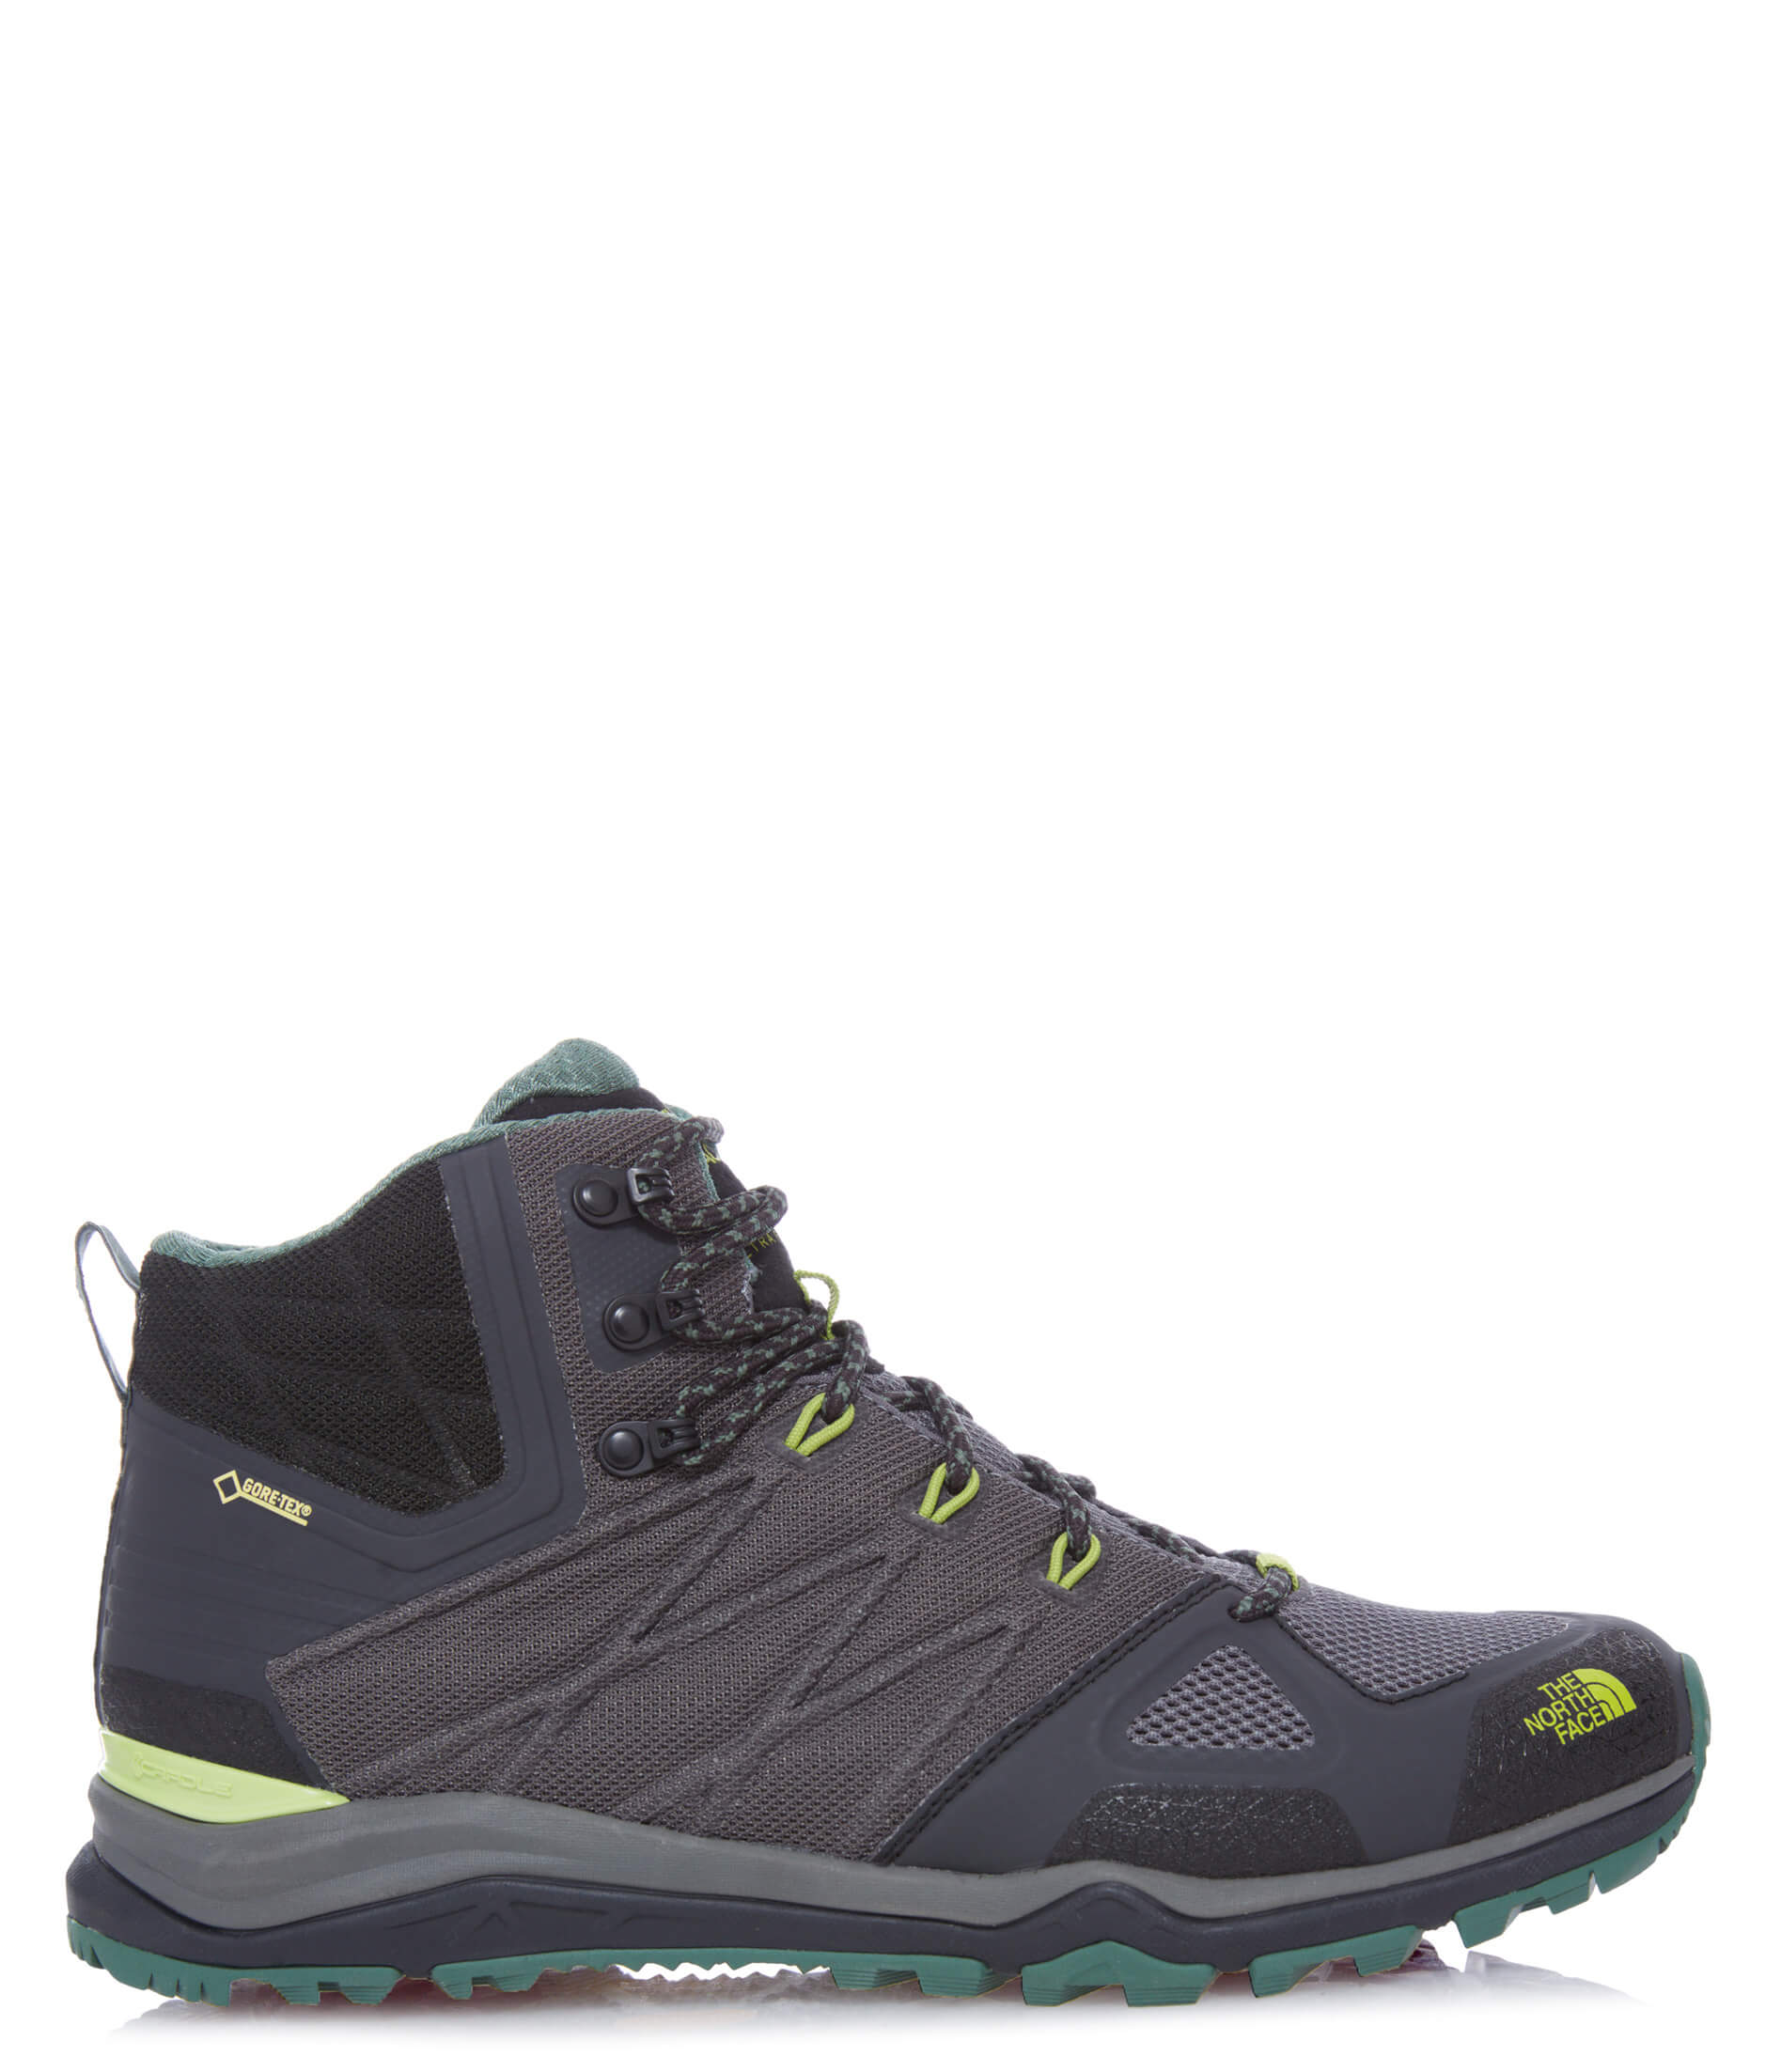 new product 61c1b 515d3 The North Face Men's Ultra Fastpack II Mid GTX Boots Regular Price: $229  Special Price: $114 50% off - + Buy Now